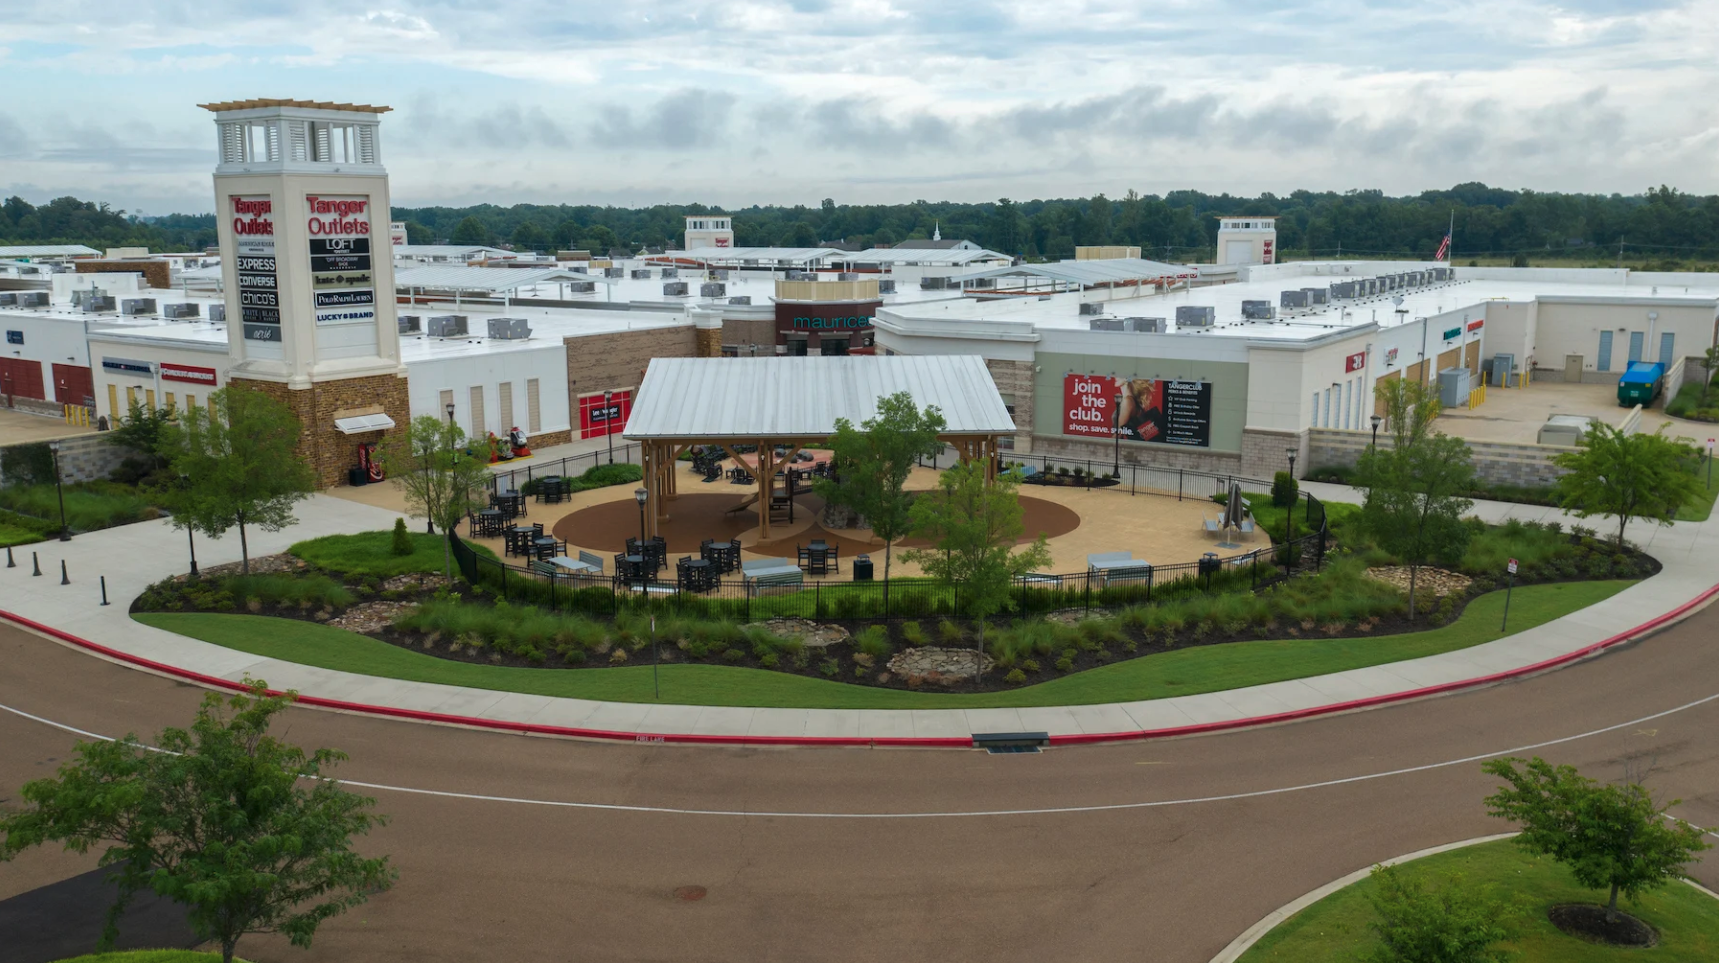 Retail and Shopping Center Landscaping - Michael Hatcher and Associates